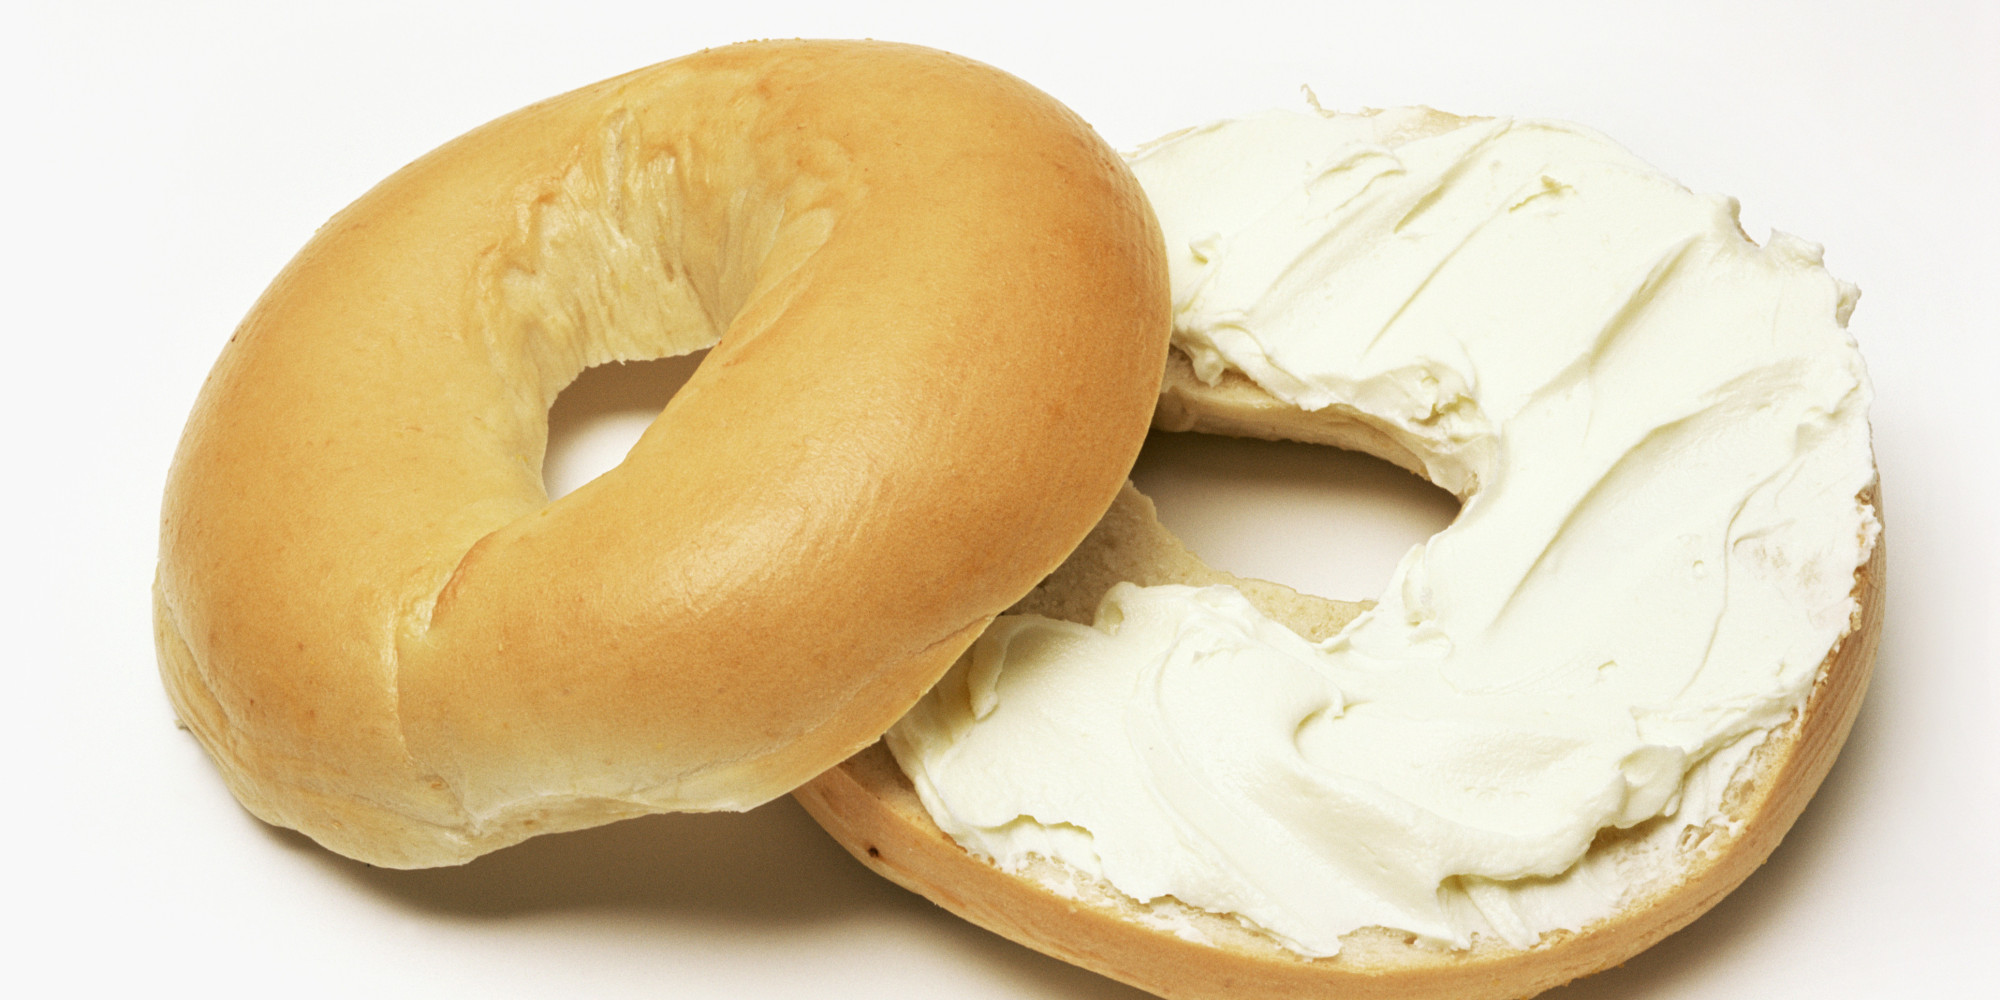 Free Breakfast Bagels Cliparts, Download Free Clip Art, Free.